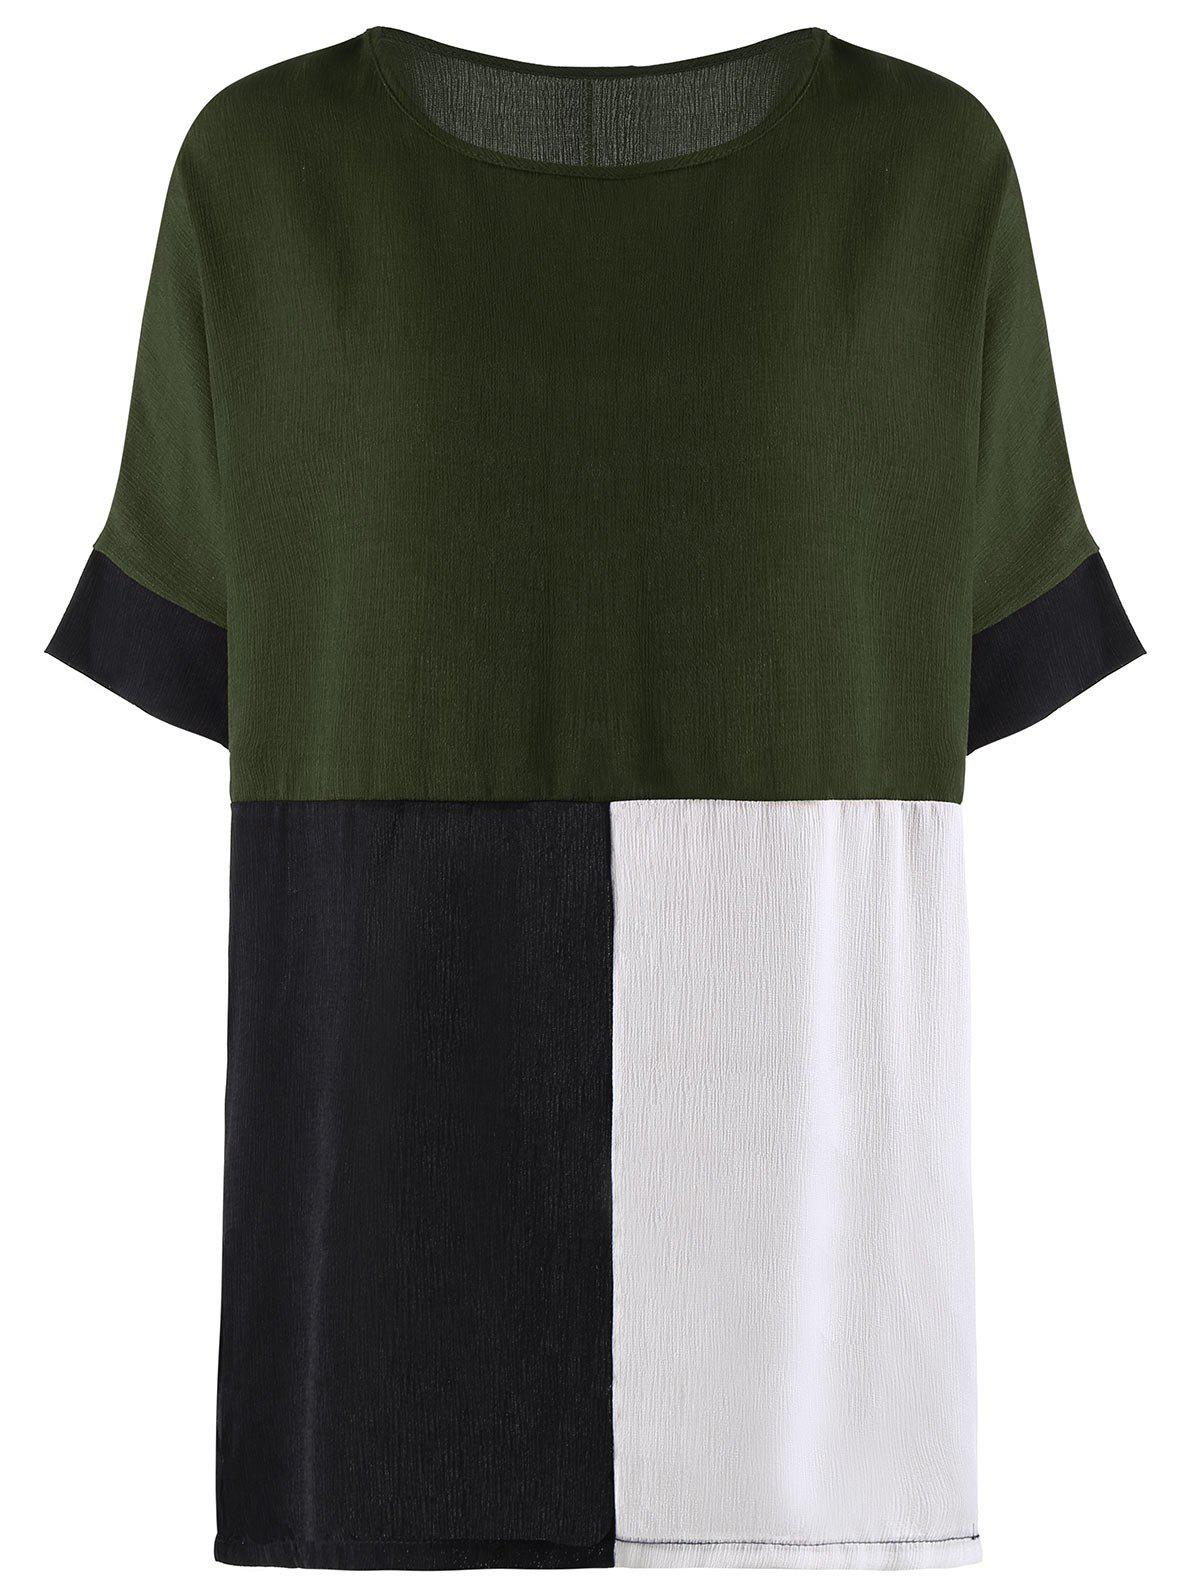 Color Block Oversized Tunic Top - GREEN 2XL